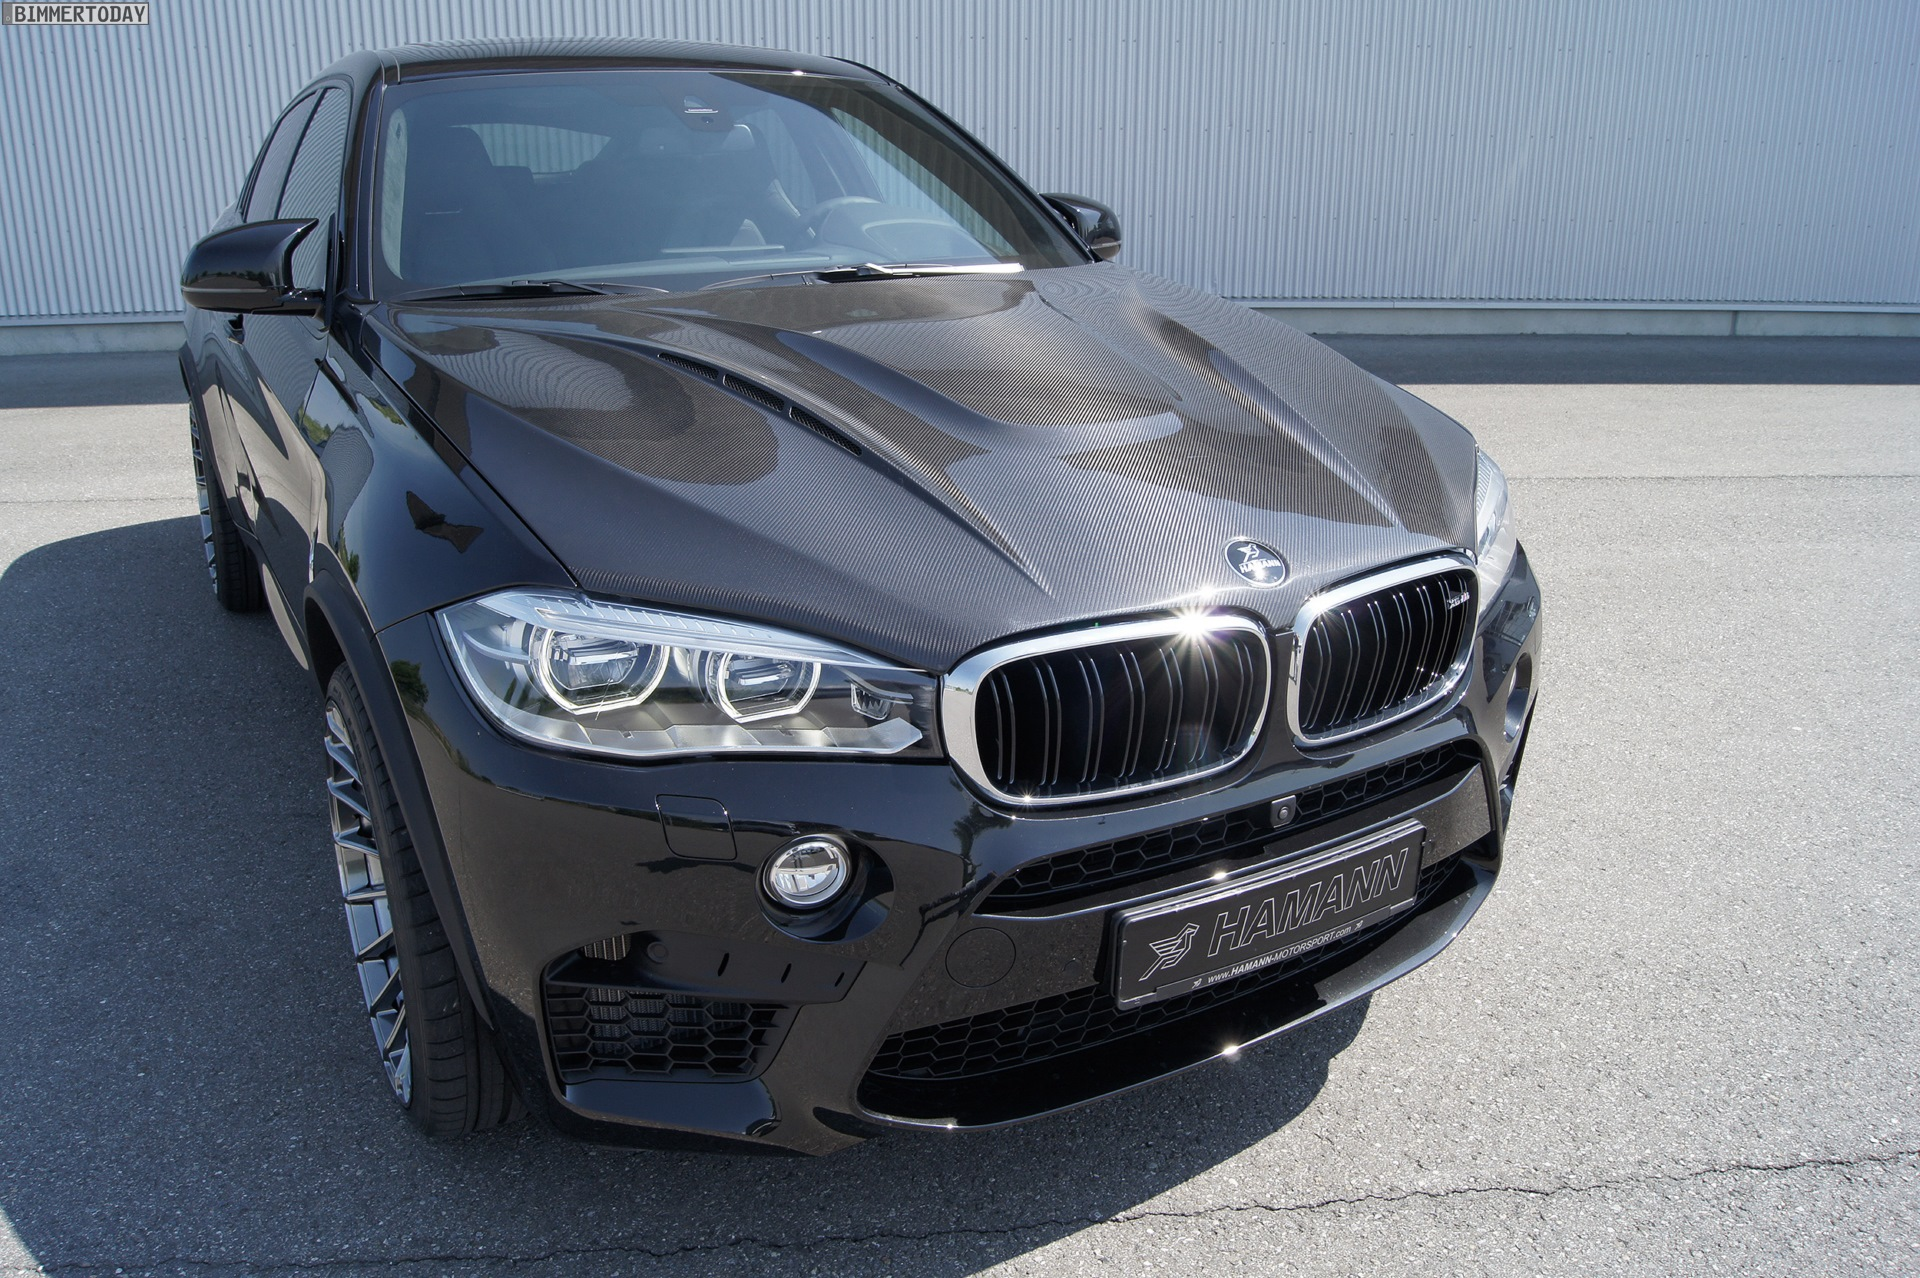 hamann bmw x6 m with 640 hp and carbon fiber hood. Black Bedroom Furniture Sets. Home Design Ideas